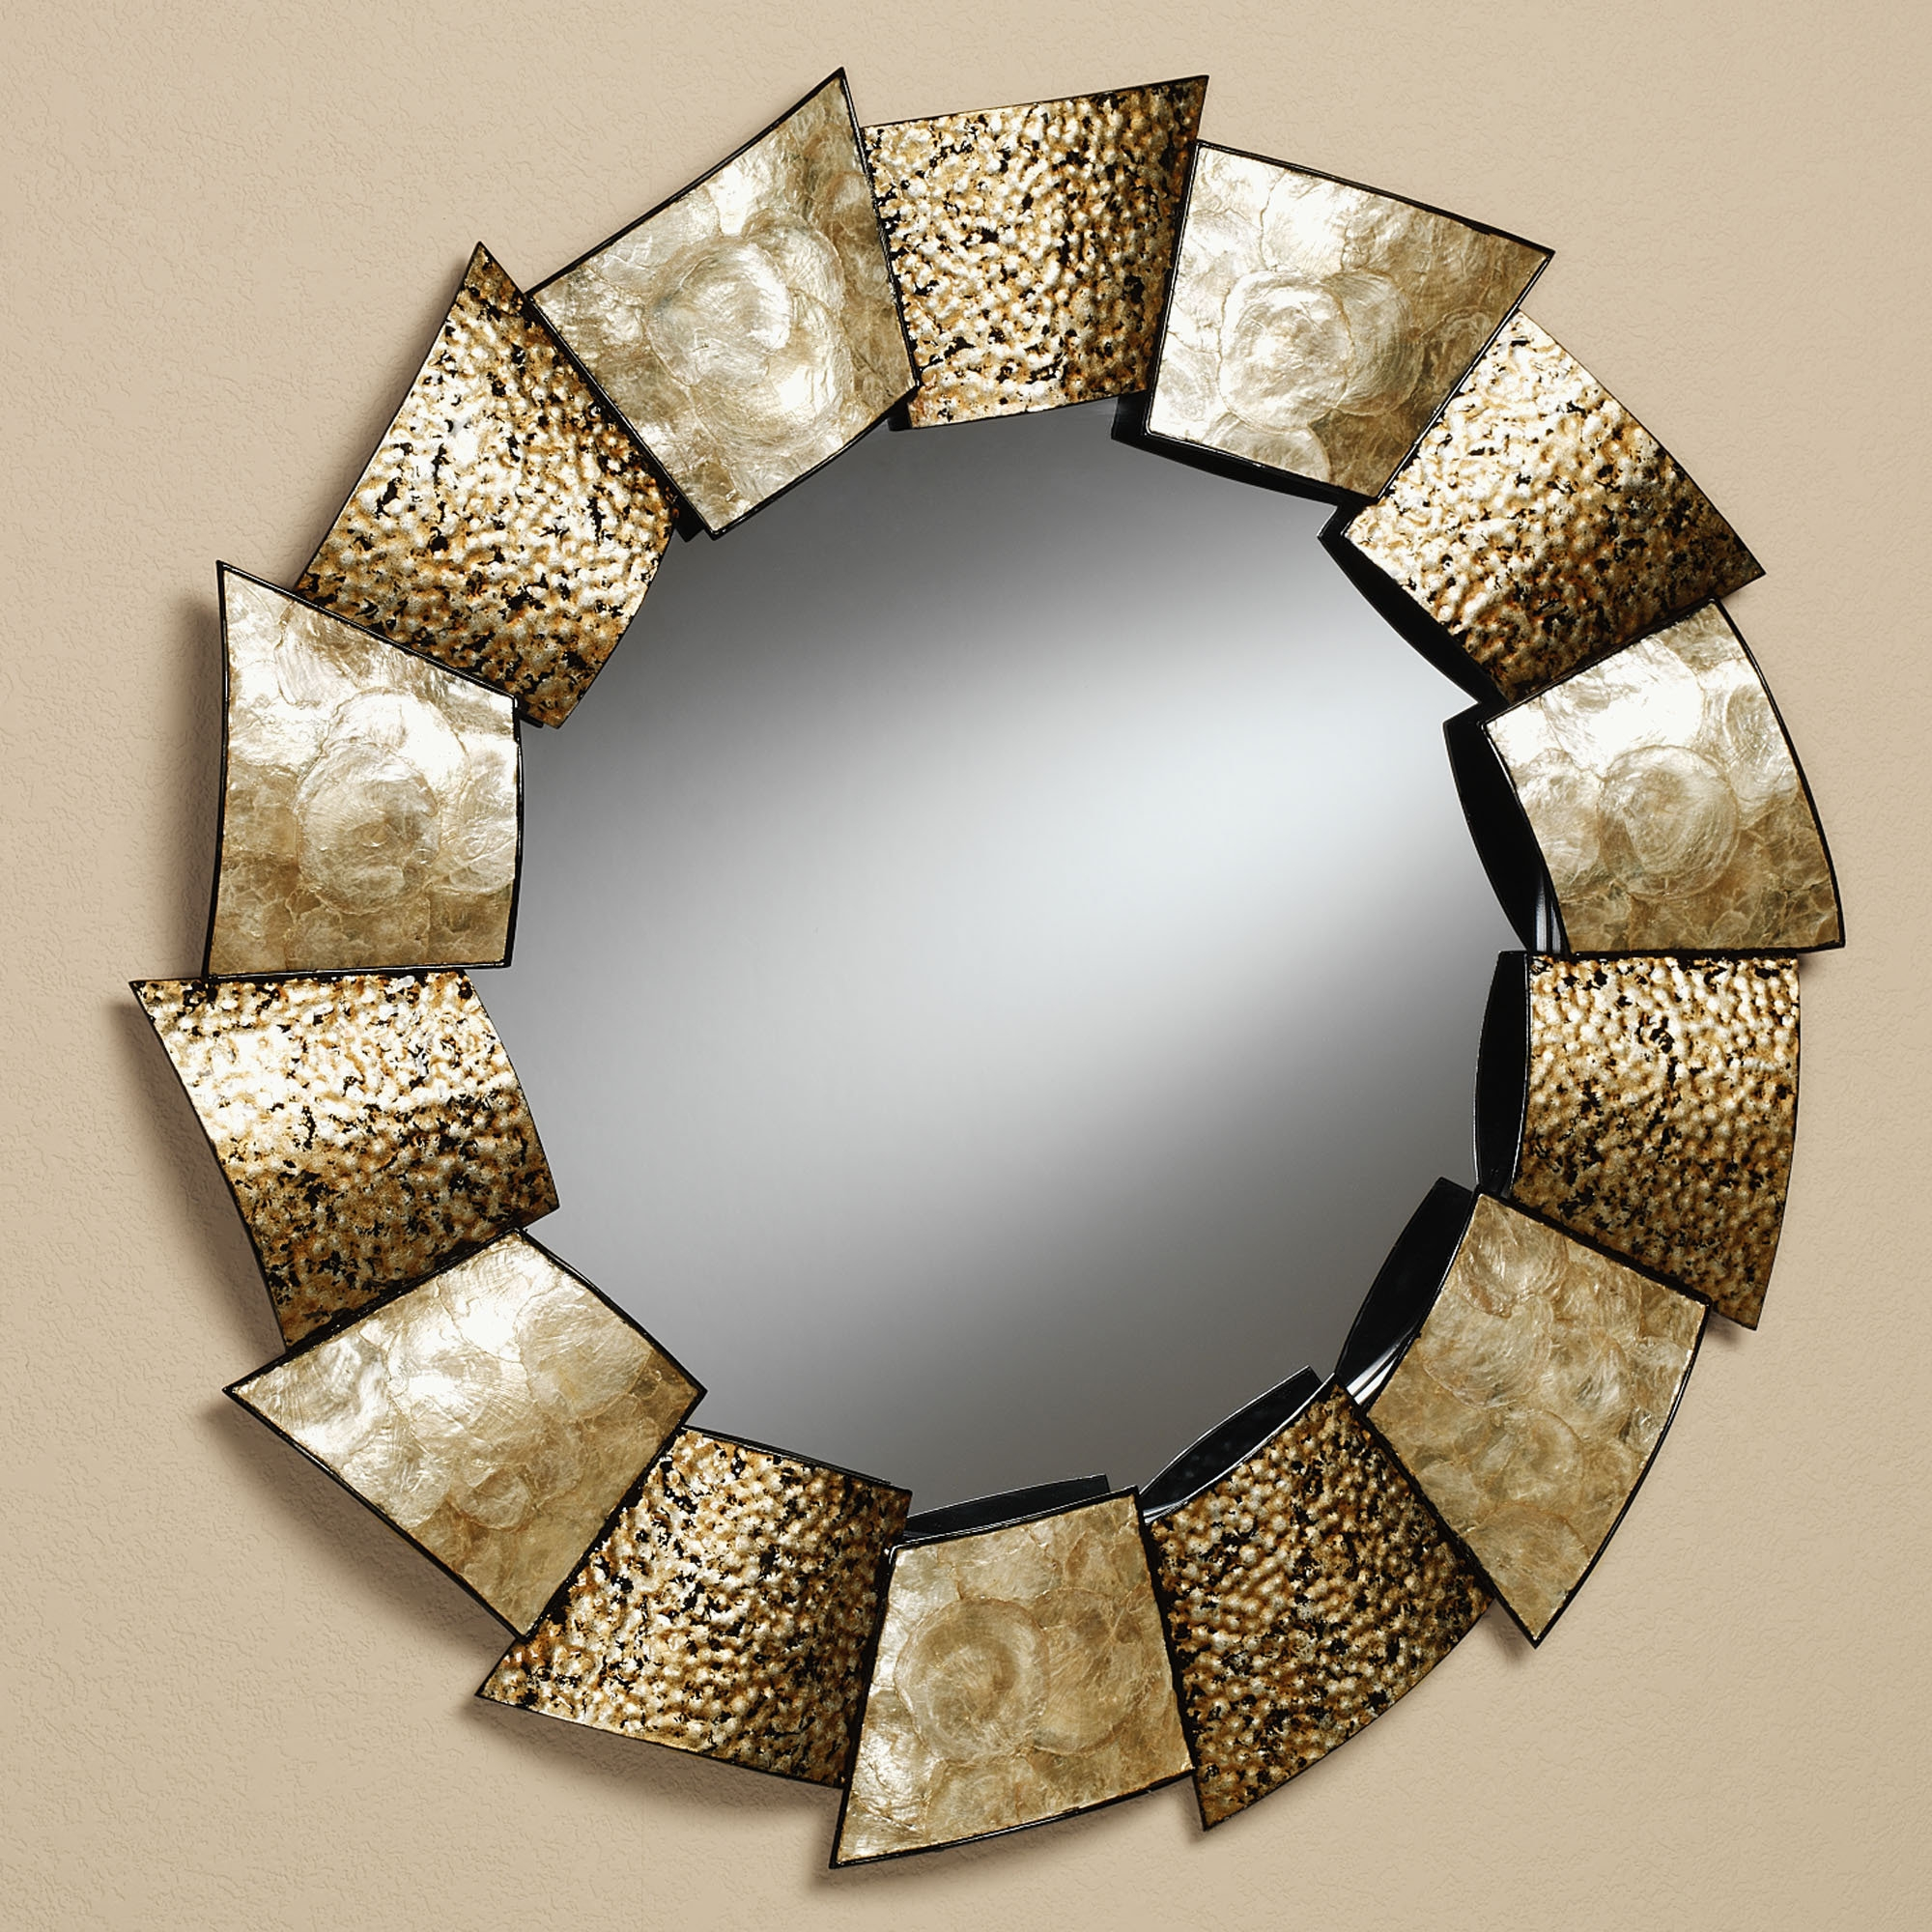 Contemporary Wall Mirrors Decorative Inarace Regarding Contemporary Wall Mirrors (Image 5 of 15)